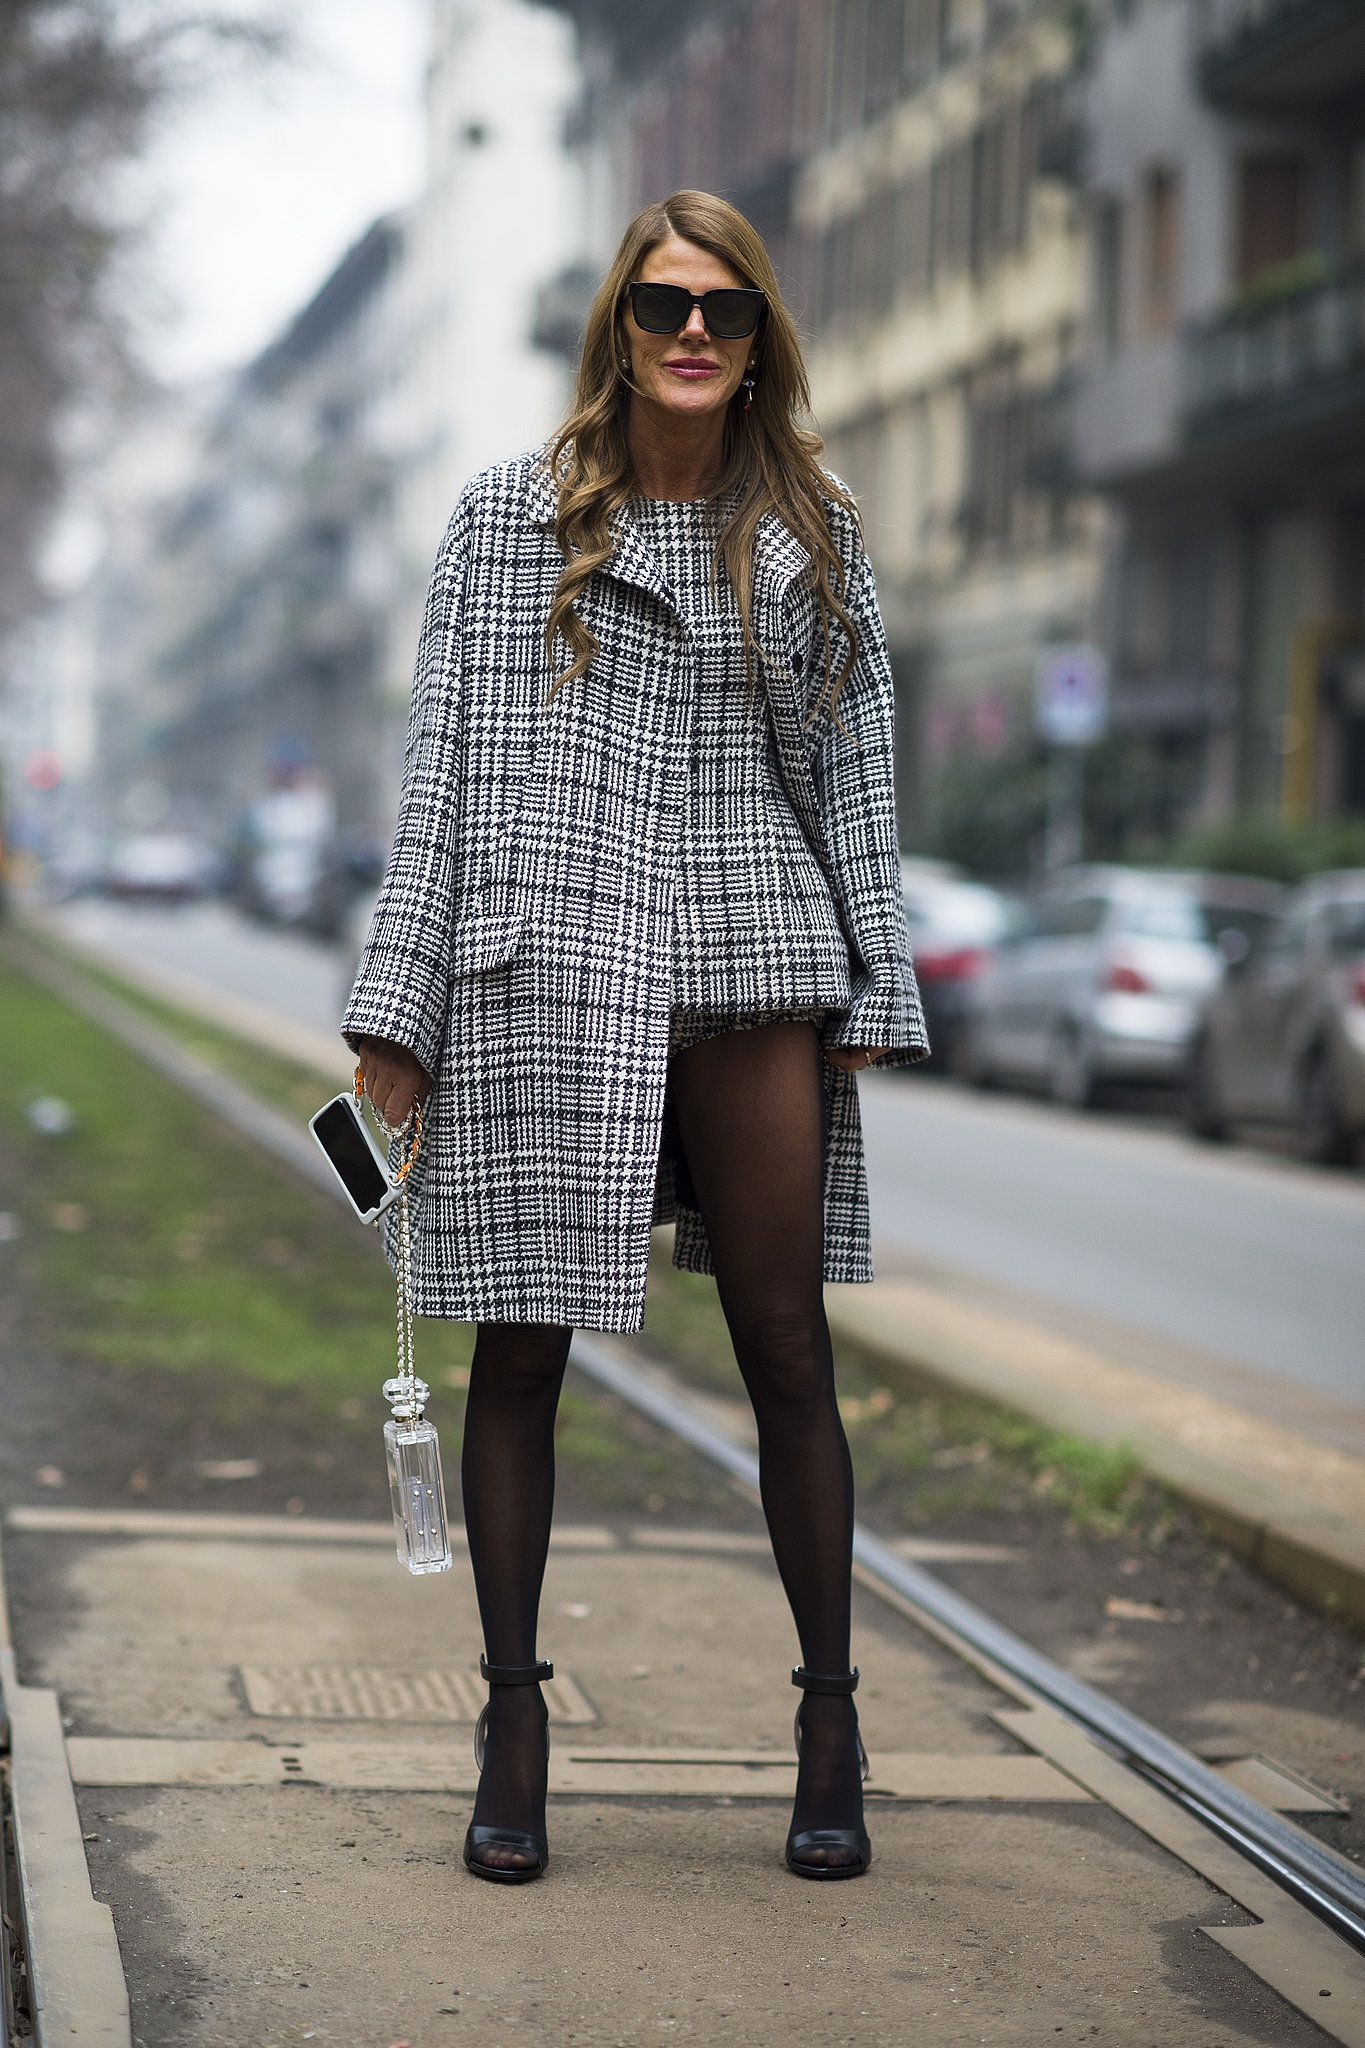 Anna Dello Russo perfected the no-pants look.